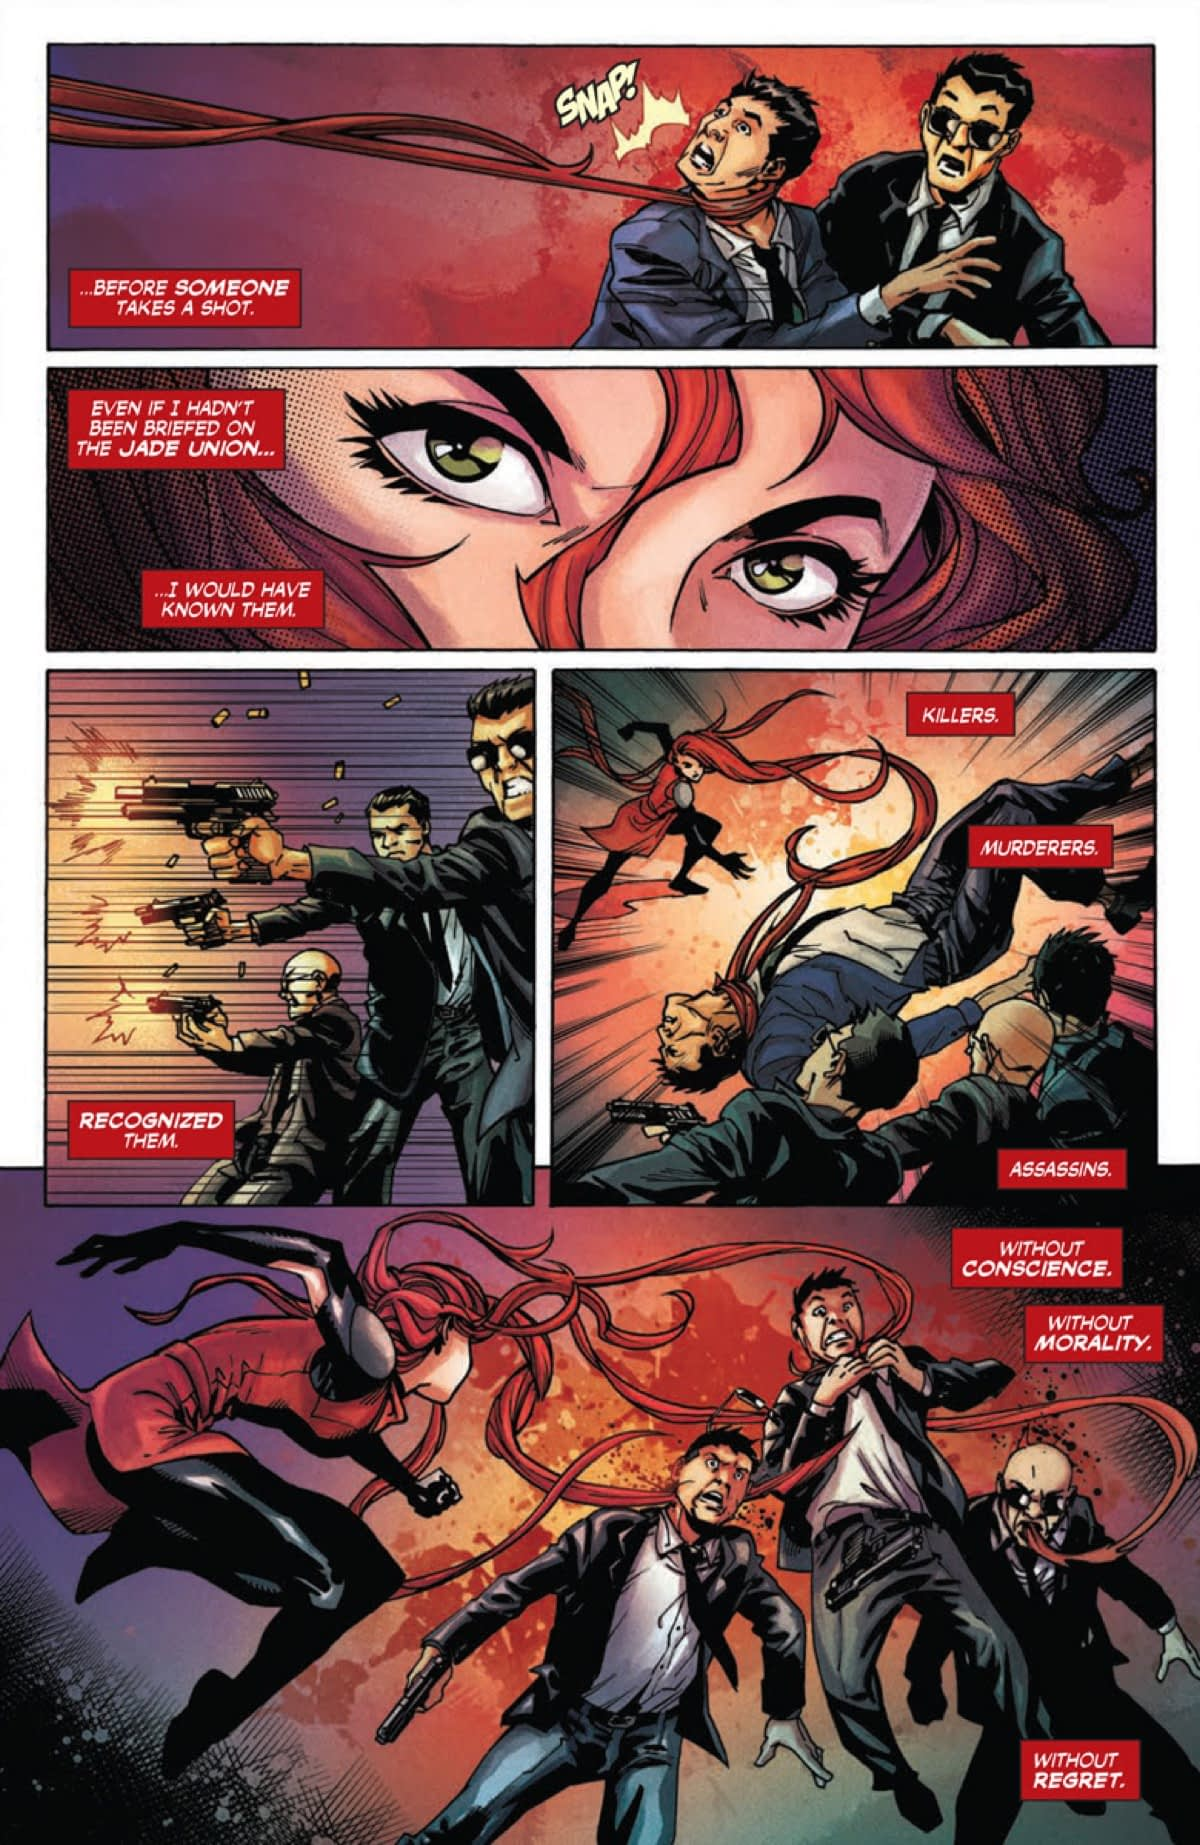 Valiant to Cut the Cord With New Roku Series by Bunn and Bachs